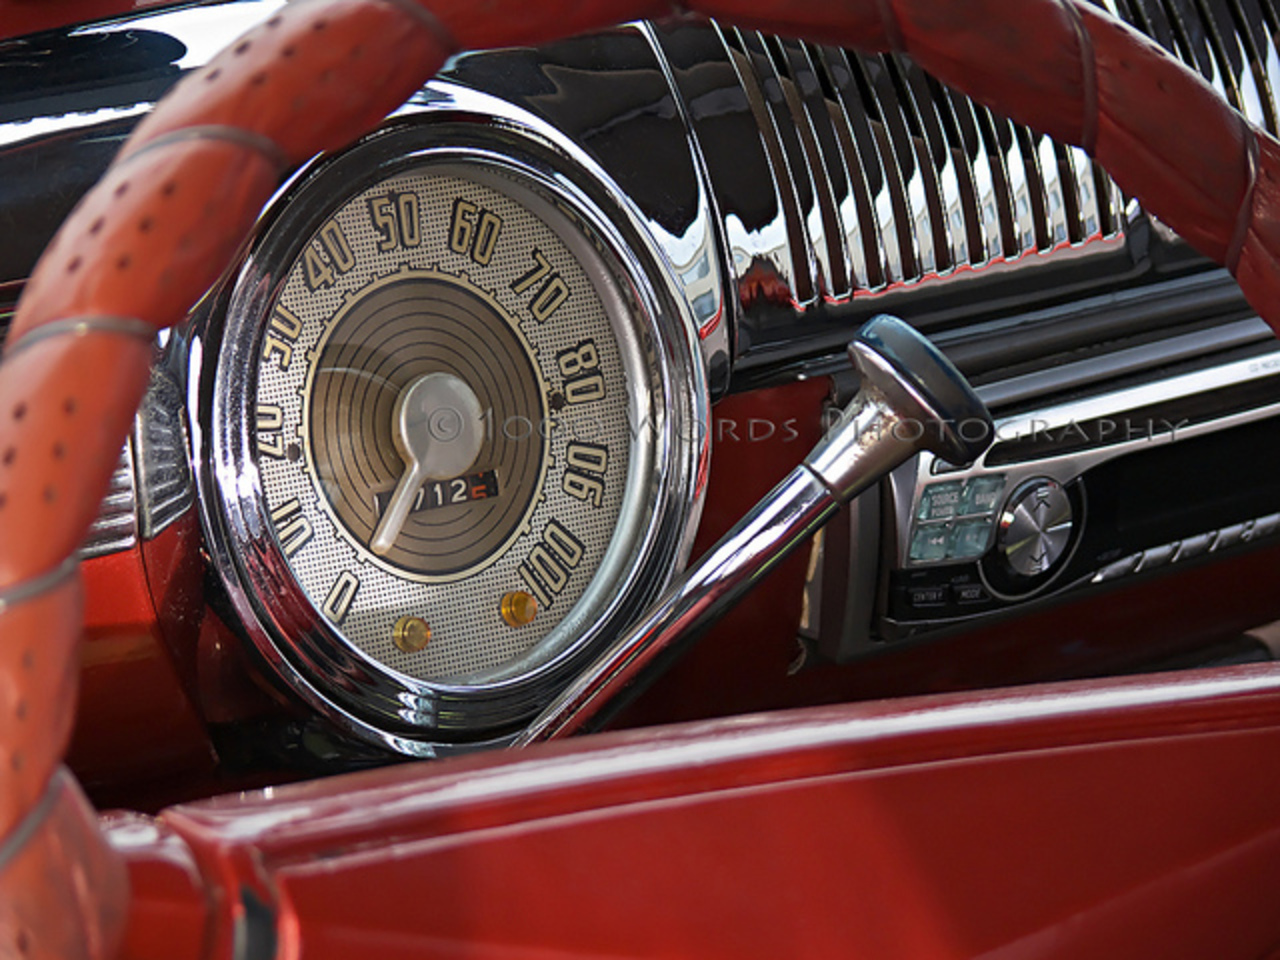 Flickr: The Custom car interiors - Classic and Vintage Pool